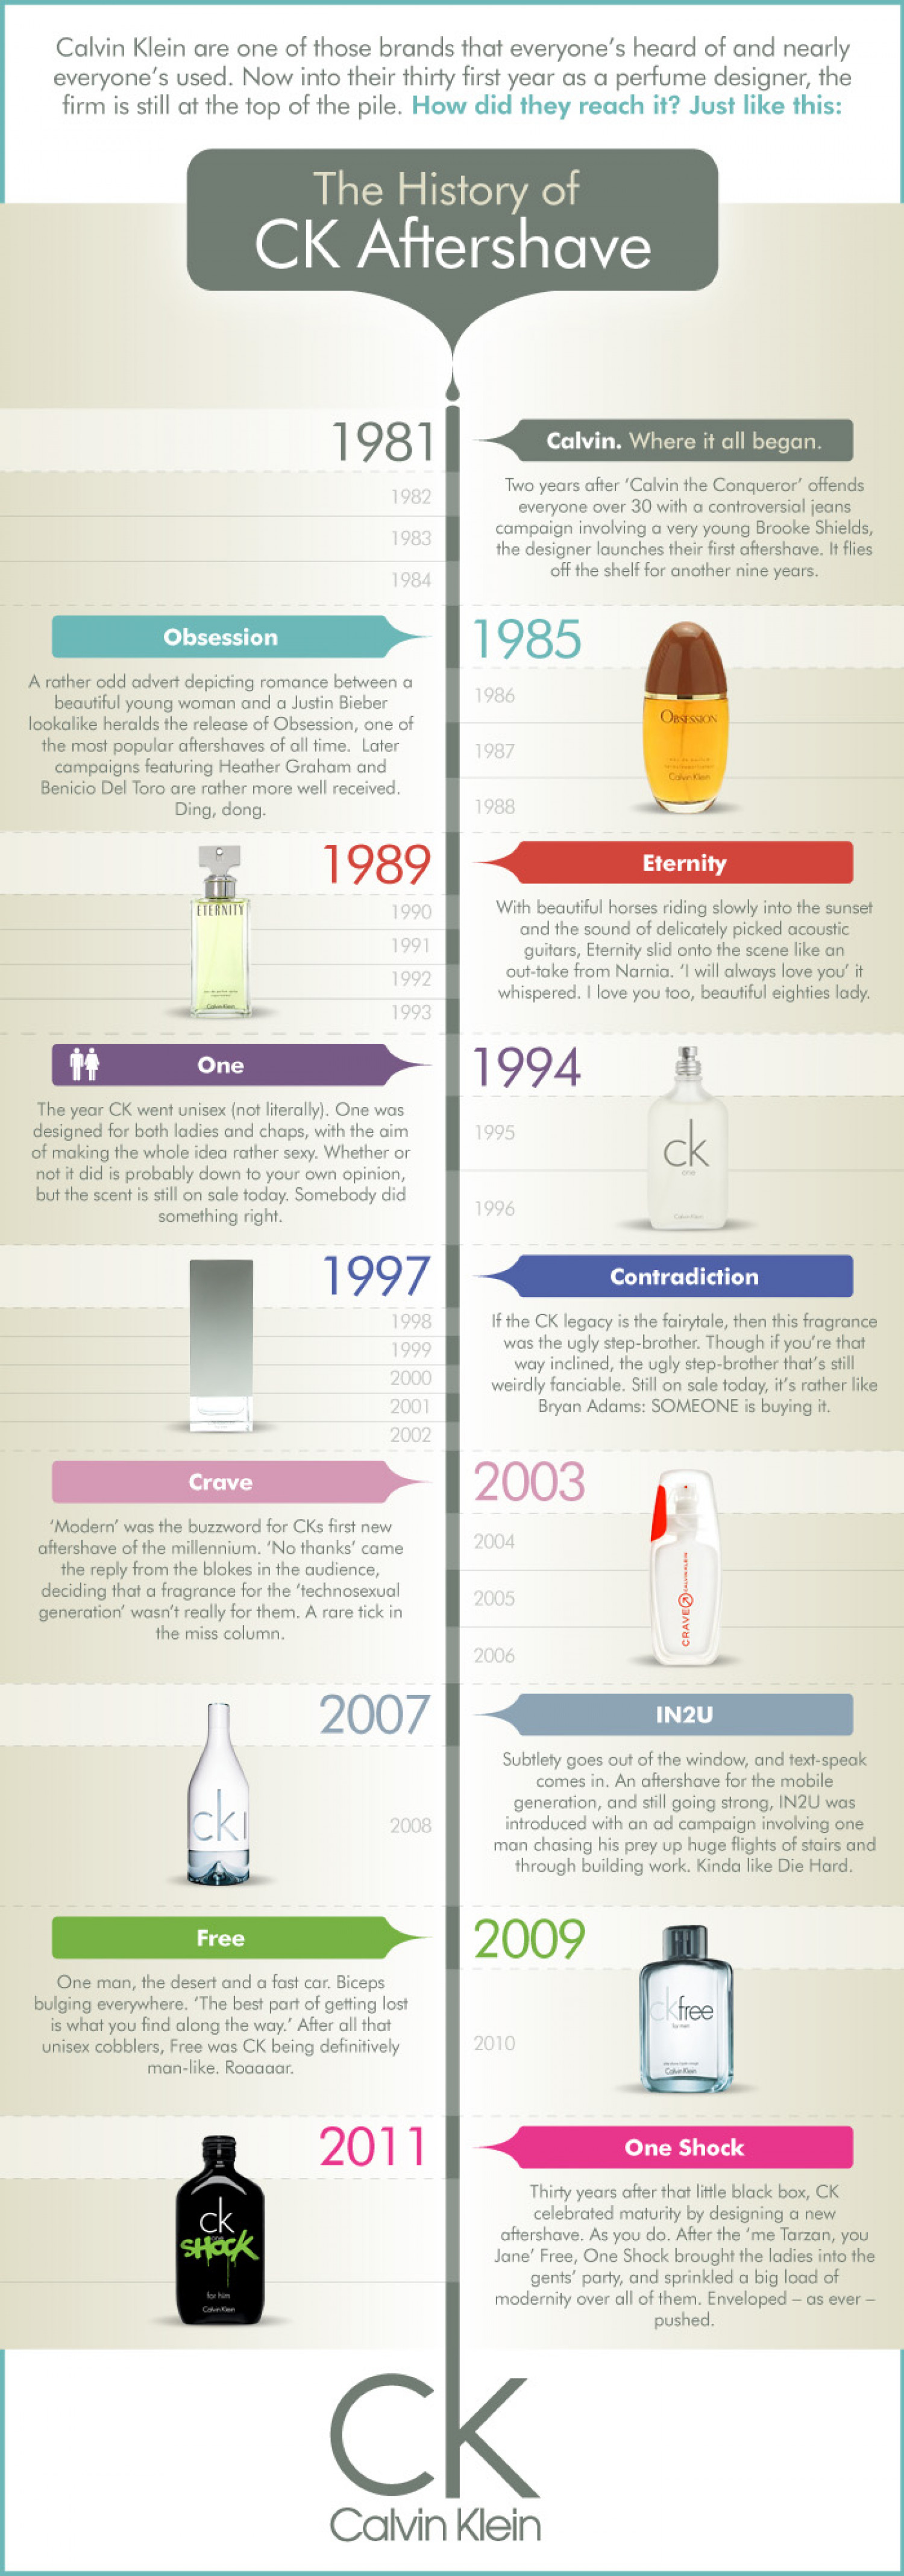 The History of Calvin Klein Aftershave Infographic